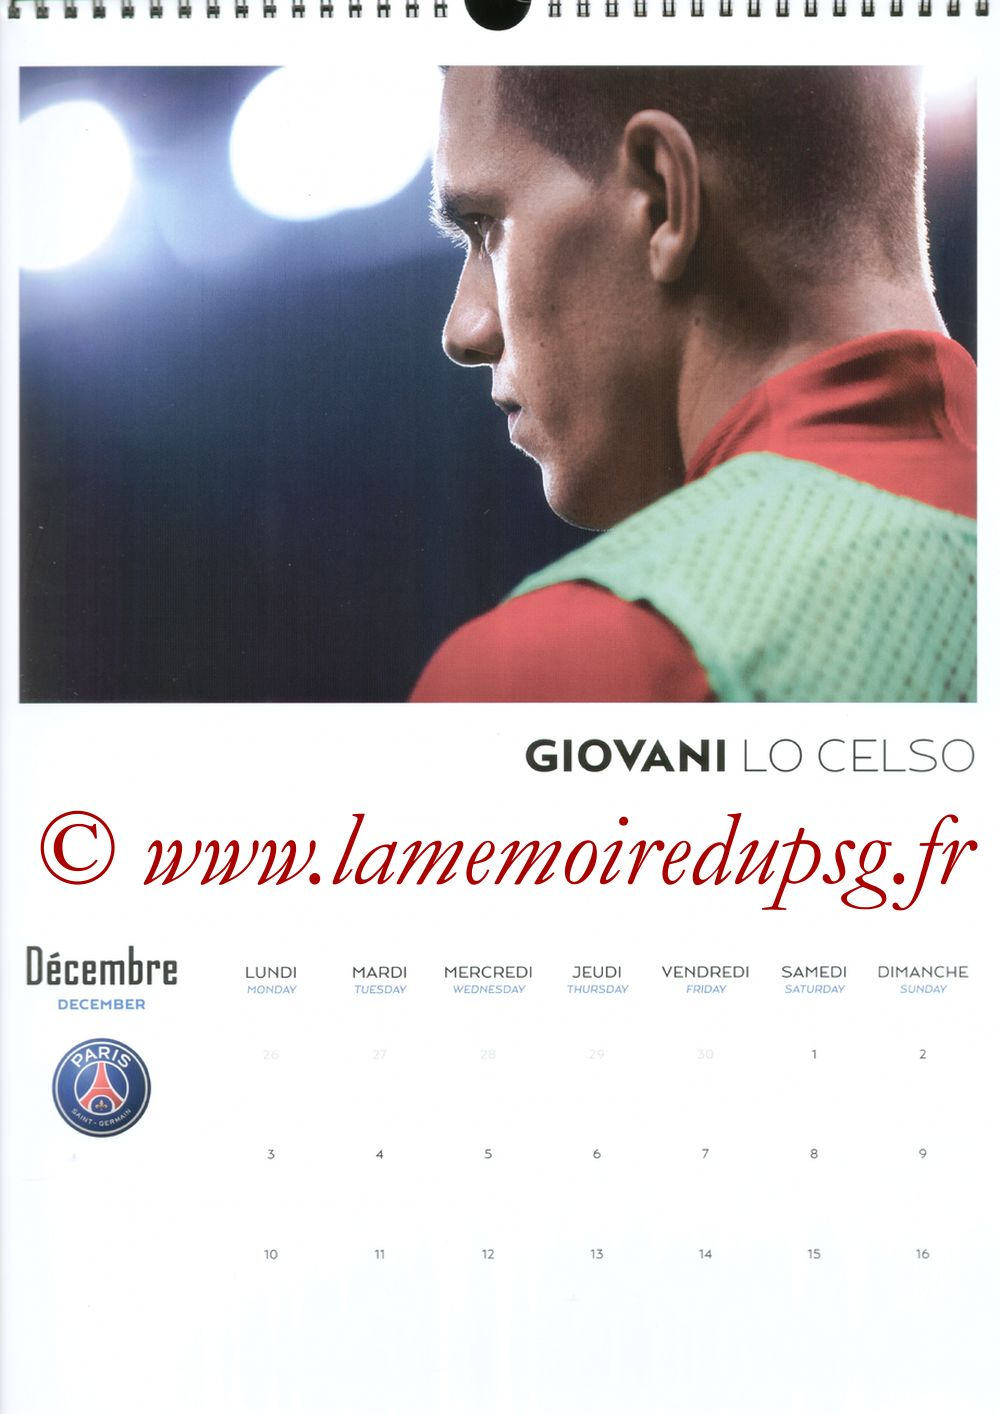 Calendrier PSG 2018 - Page 23 - Giovani LO CELSO